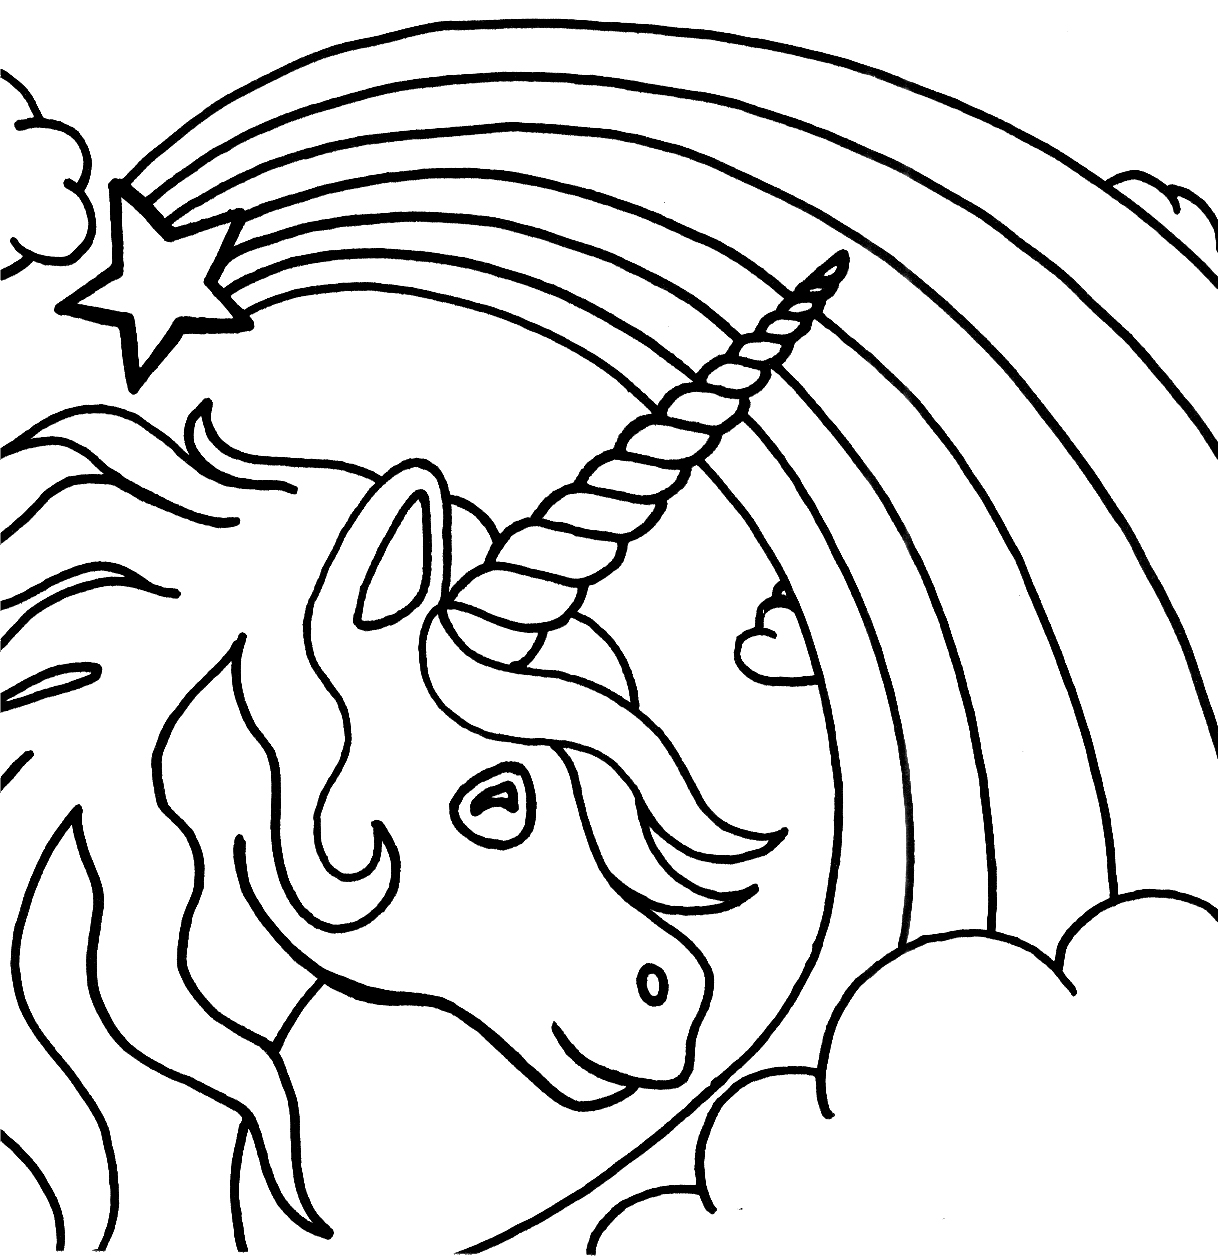 Picture for coloring printable - Unicorn Coloring Pages For Kids